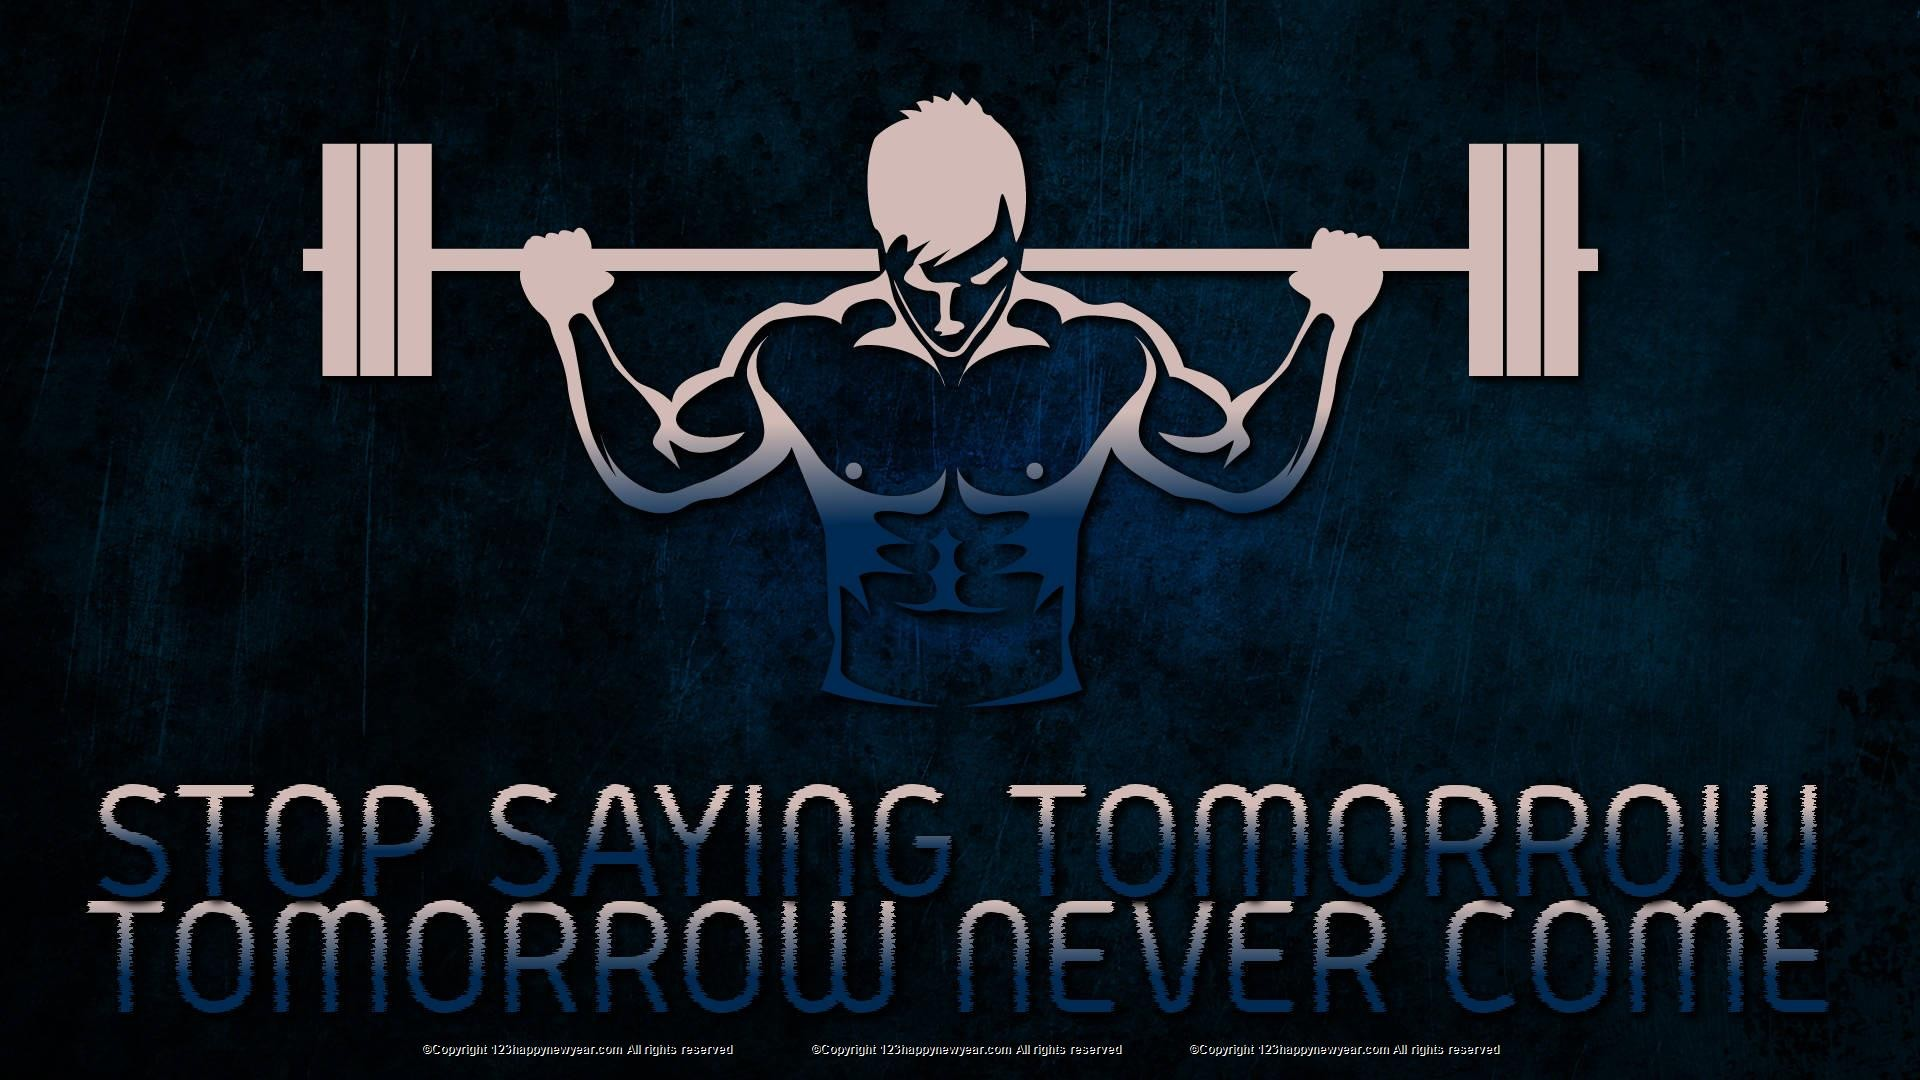 Motivational Quotes Wallpapers For Android Gym Wallpaper 183 ① Download Free Beautiful Hd Wallpapers For